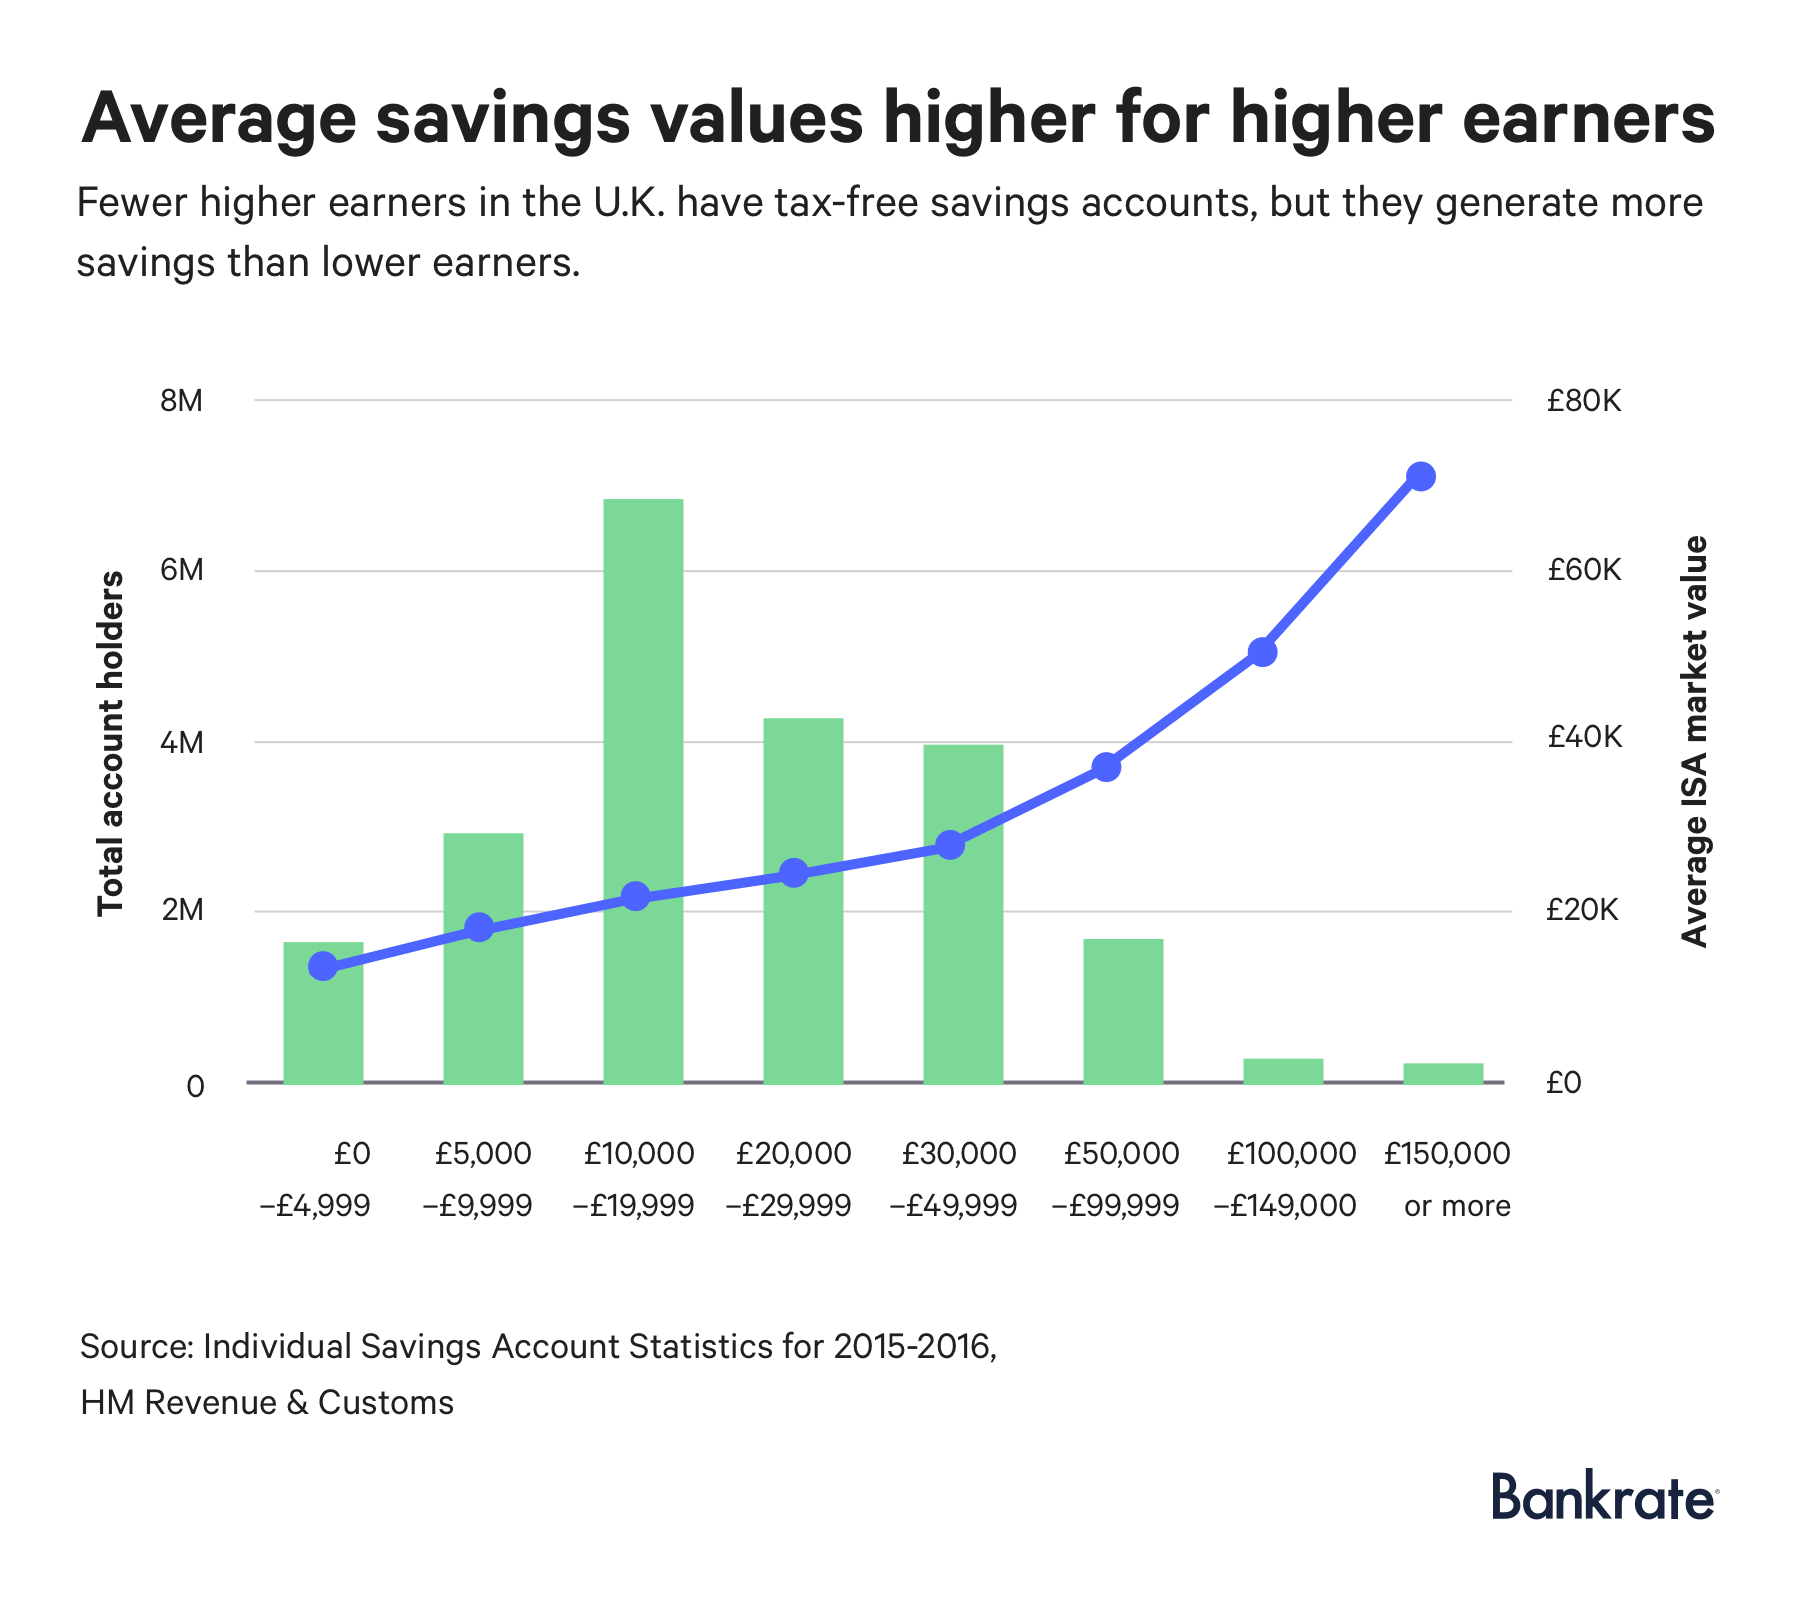 Graph: Fewer higher earners in the U.K. have tax-free savings accounts, but they generate more savings than lower earners